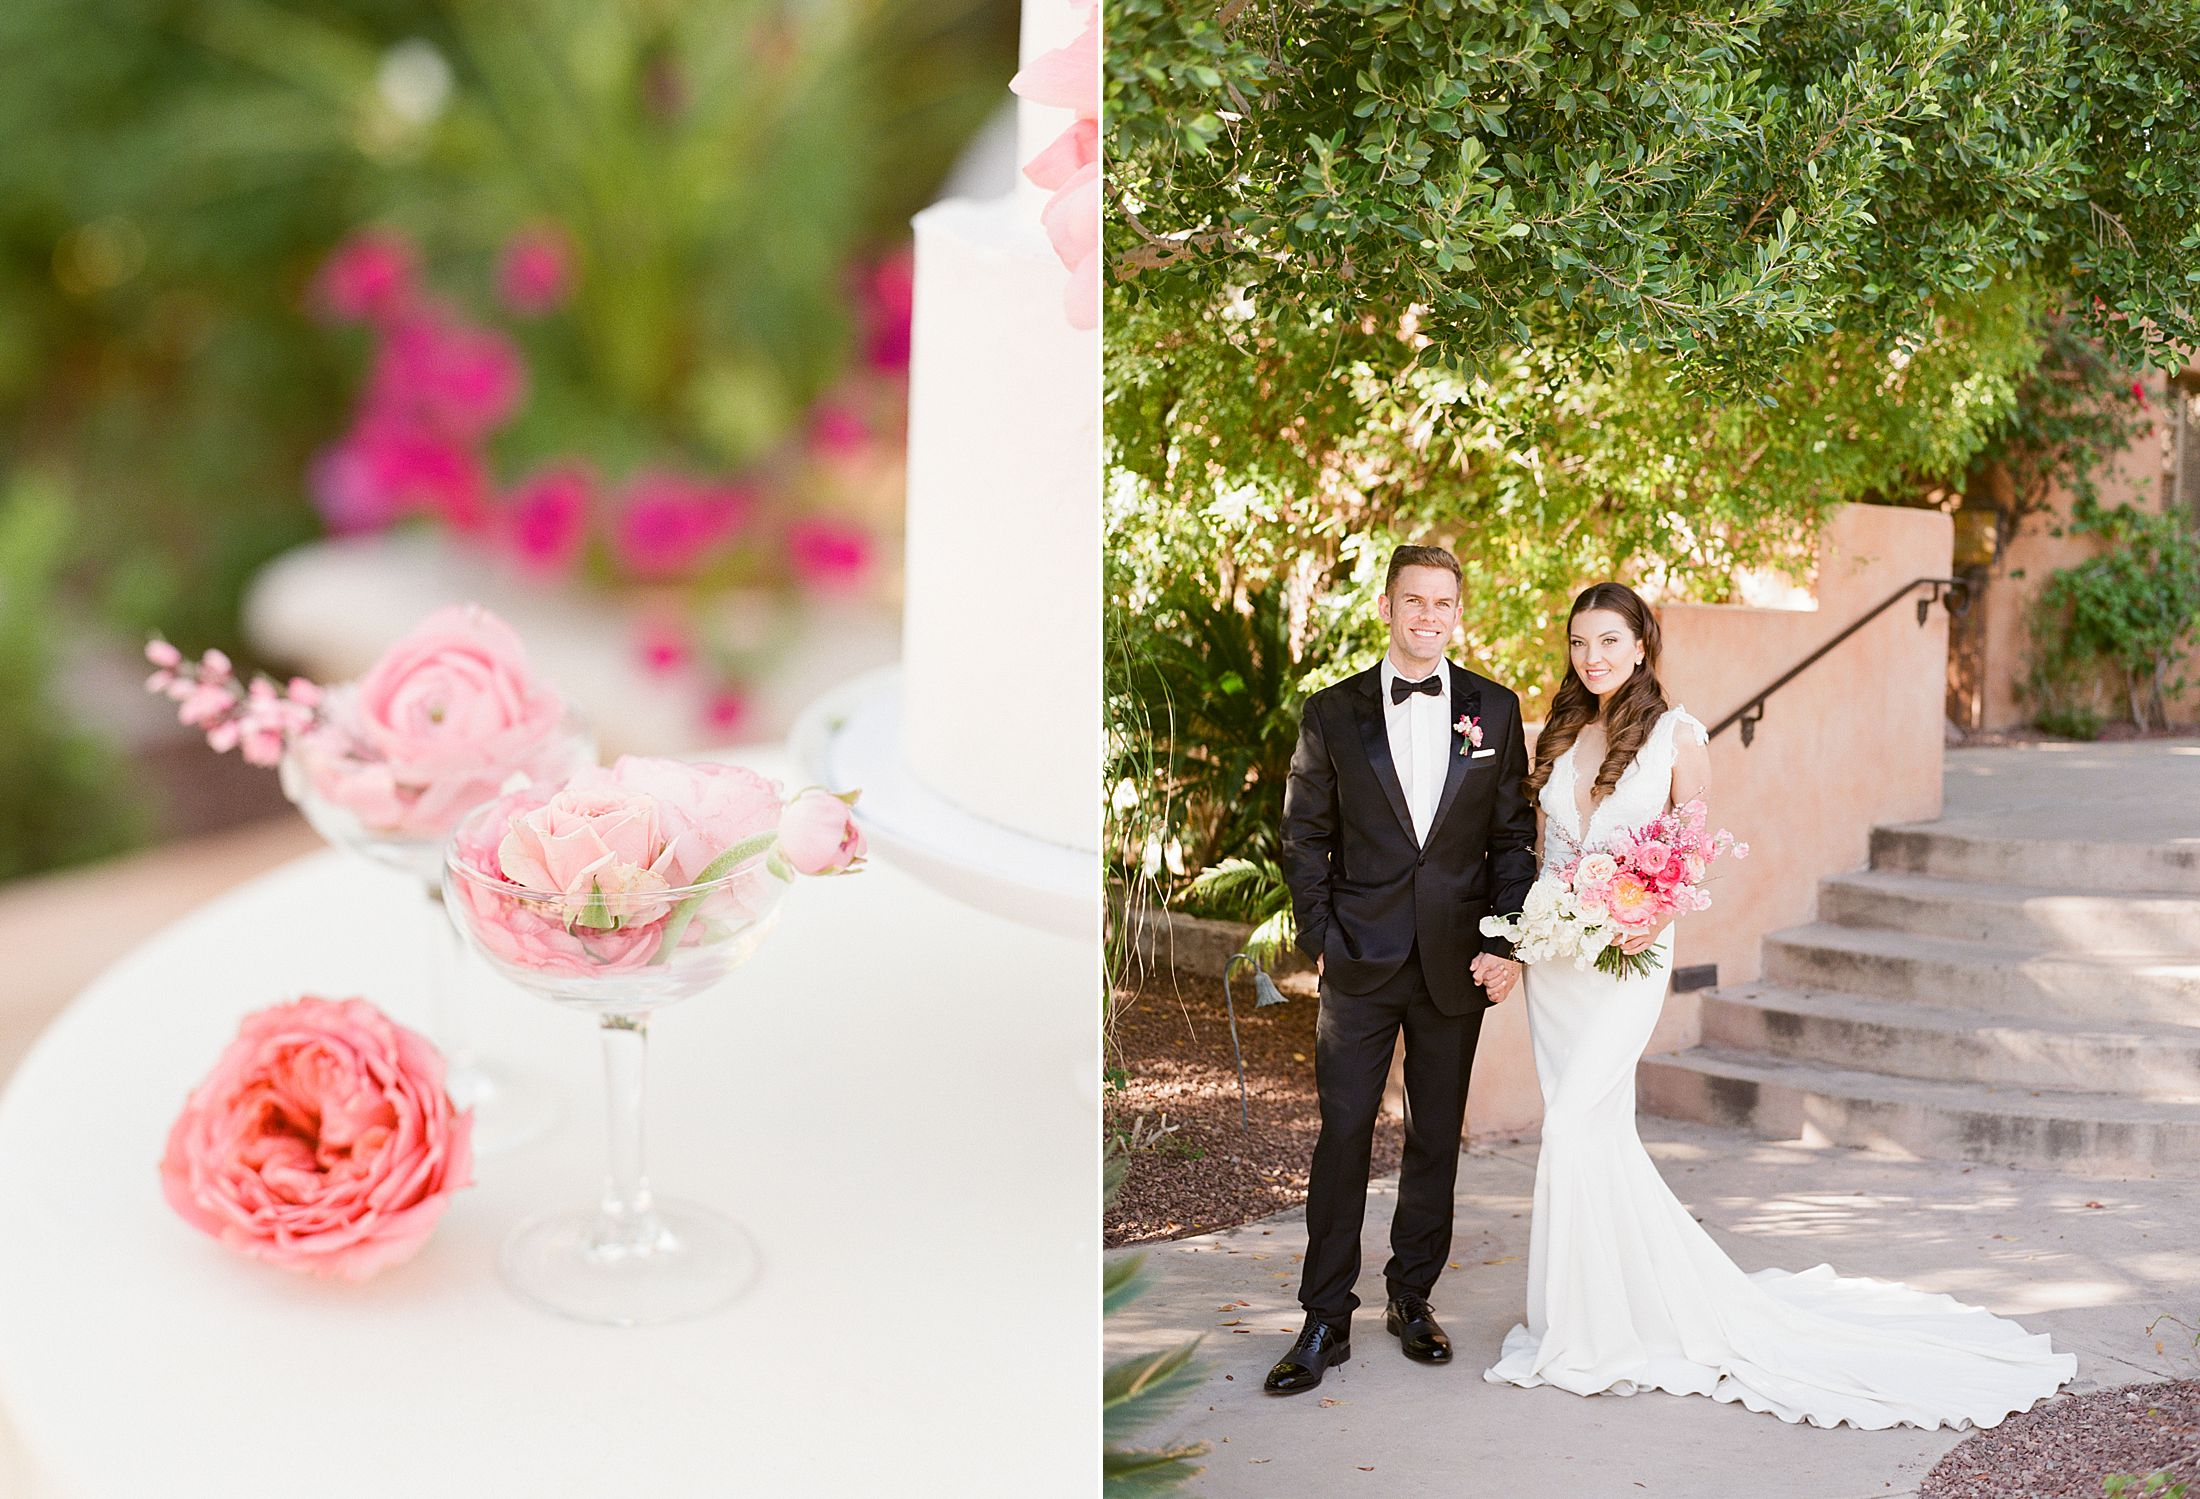 Pink Ombre Wedding Inspiration on Style Me Pretty - Royal Palms Wedding - Scottsdale Wedding - Ashley Baumgartner - Bloom and Blueprint - Wedding Puppies - Bulldog Puppies_0010.jpg